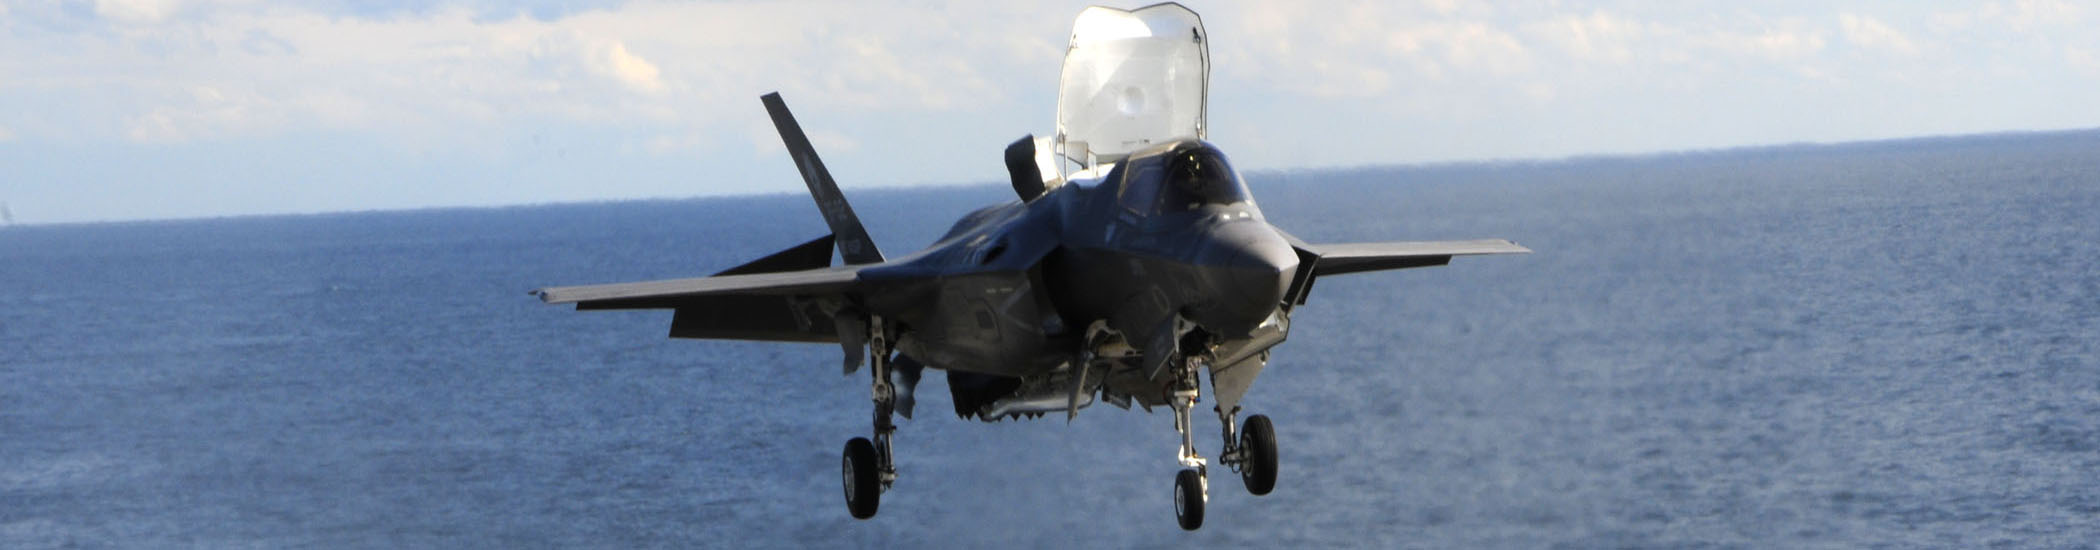 The F-35B Lightning 11 prepares to vertically land for the first time at sea on the flight deck of the amphibious assault ship USS Wasp (LHD 1). The F-35B is the Marine Corps Joint Strike  Force variant, designed for short takeoff and vertical landing on Navy amphibious ships. The purpose of F-35B sea trials on USS Wasp (LHD-1) is to test F-35B systems and ship's support functions.